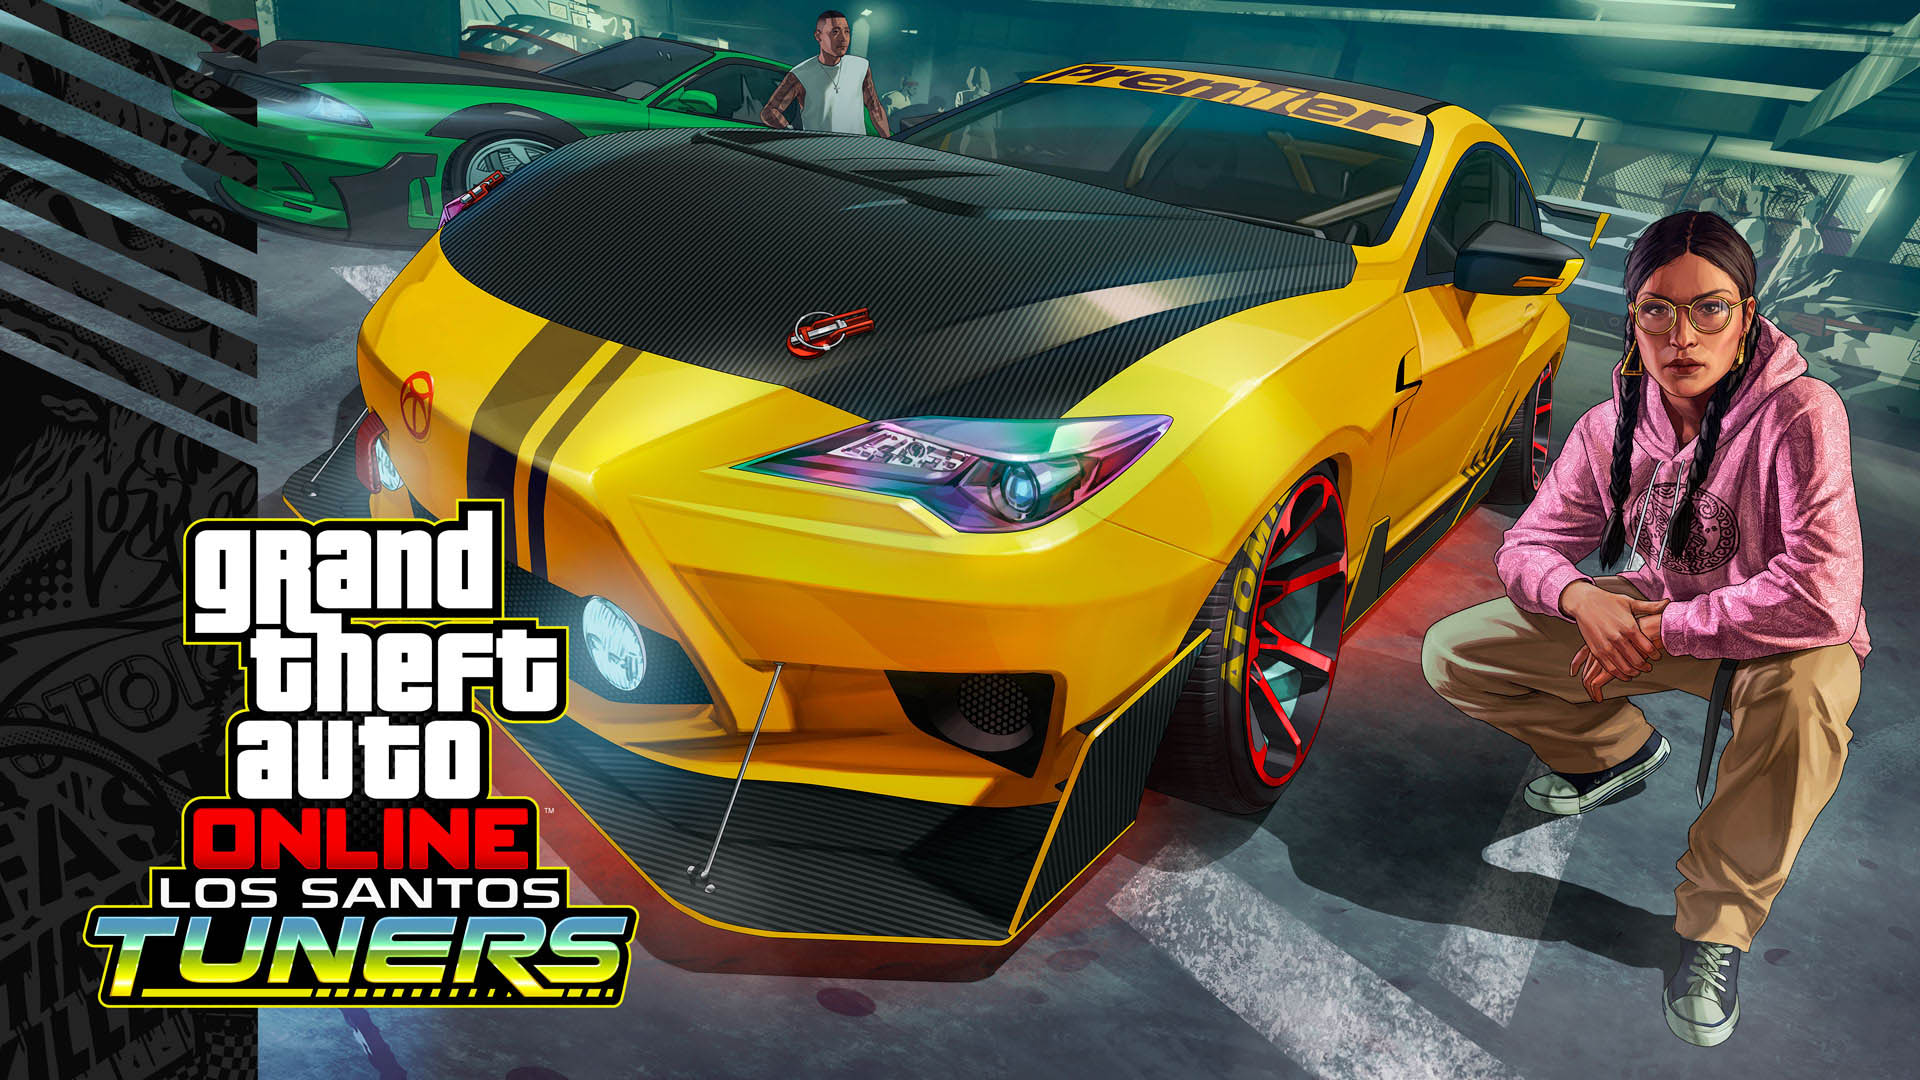 gta-online:-los-santos-tuners-update-coming-july-20,-new-autos-&-far-more-(with-trailer)